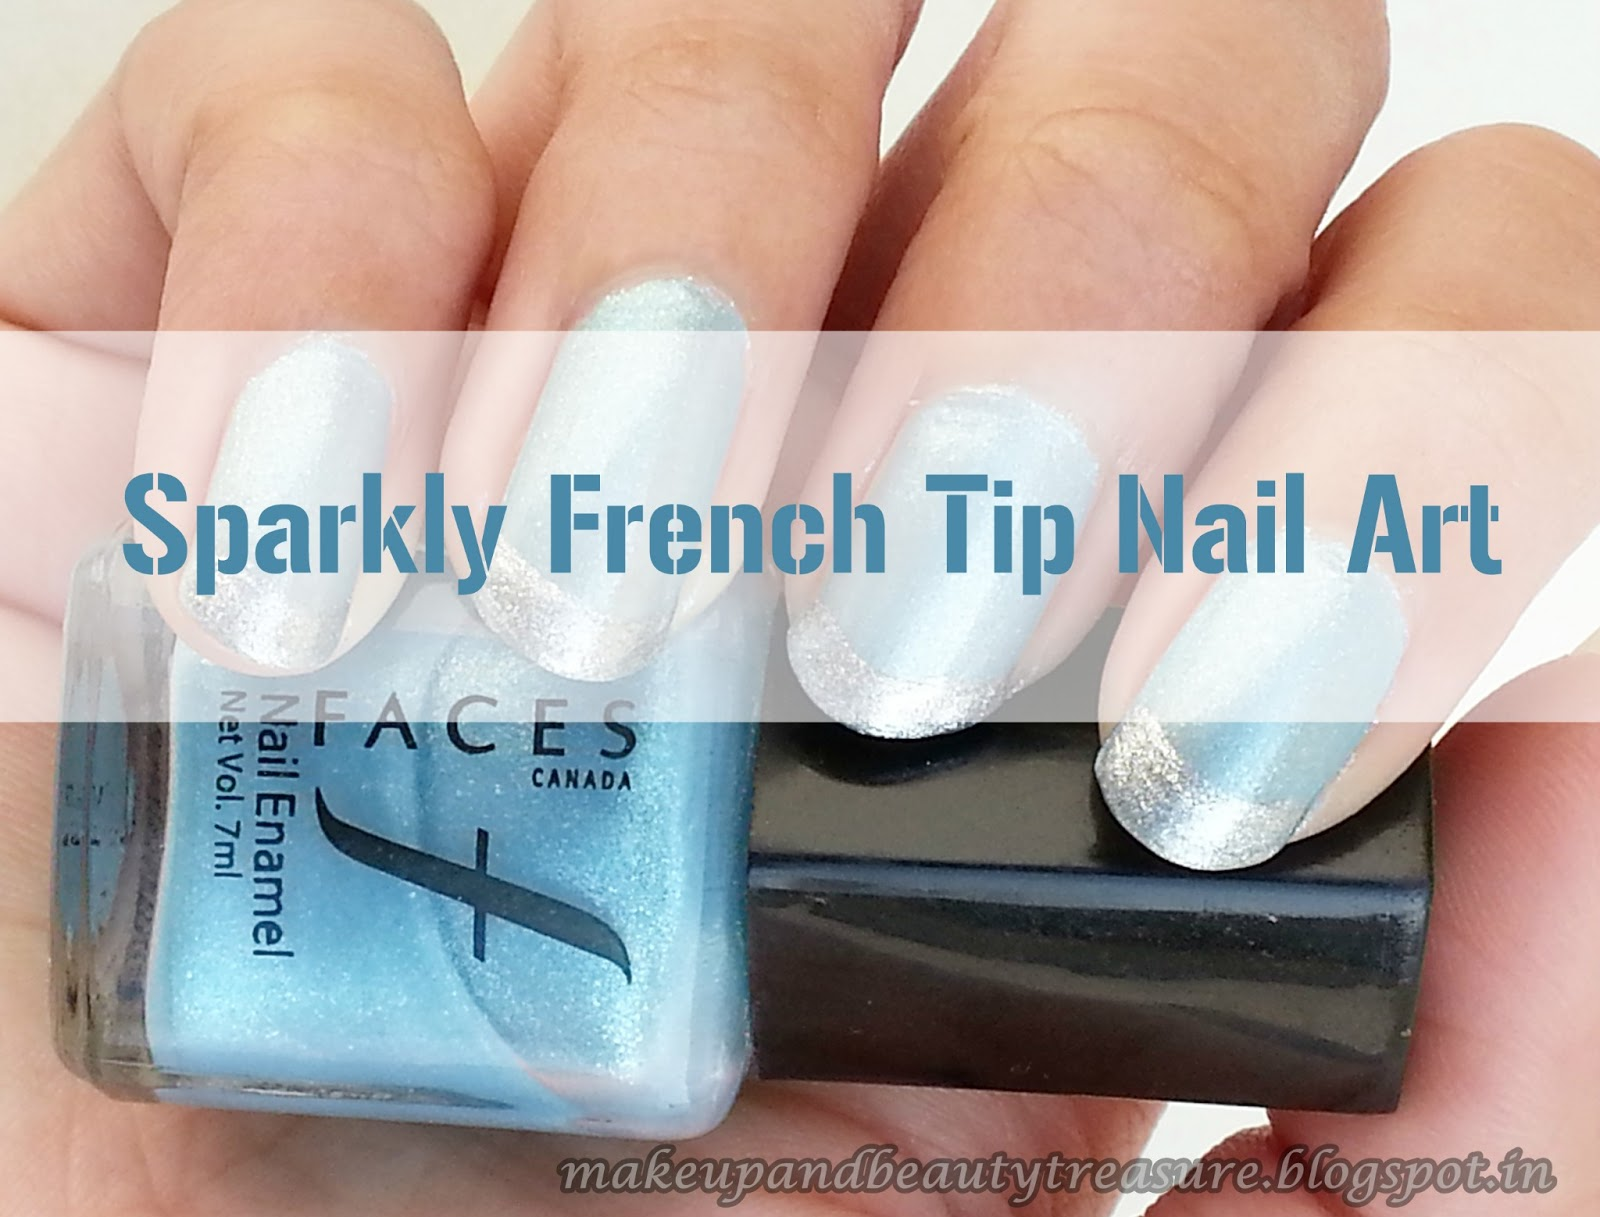 Makeup and Beauty Treasure: Sparkly French Tip Nail Art